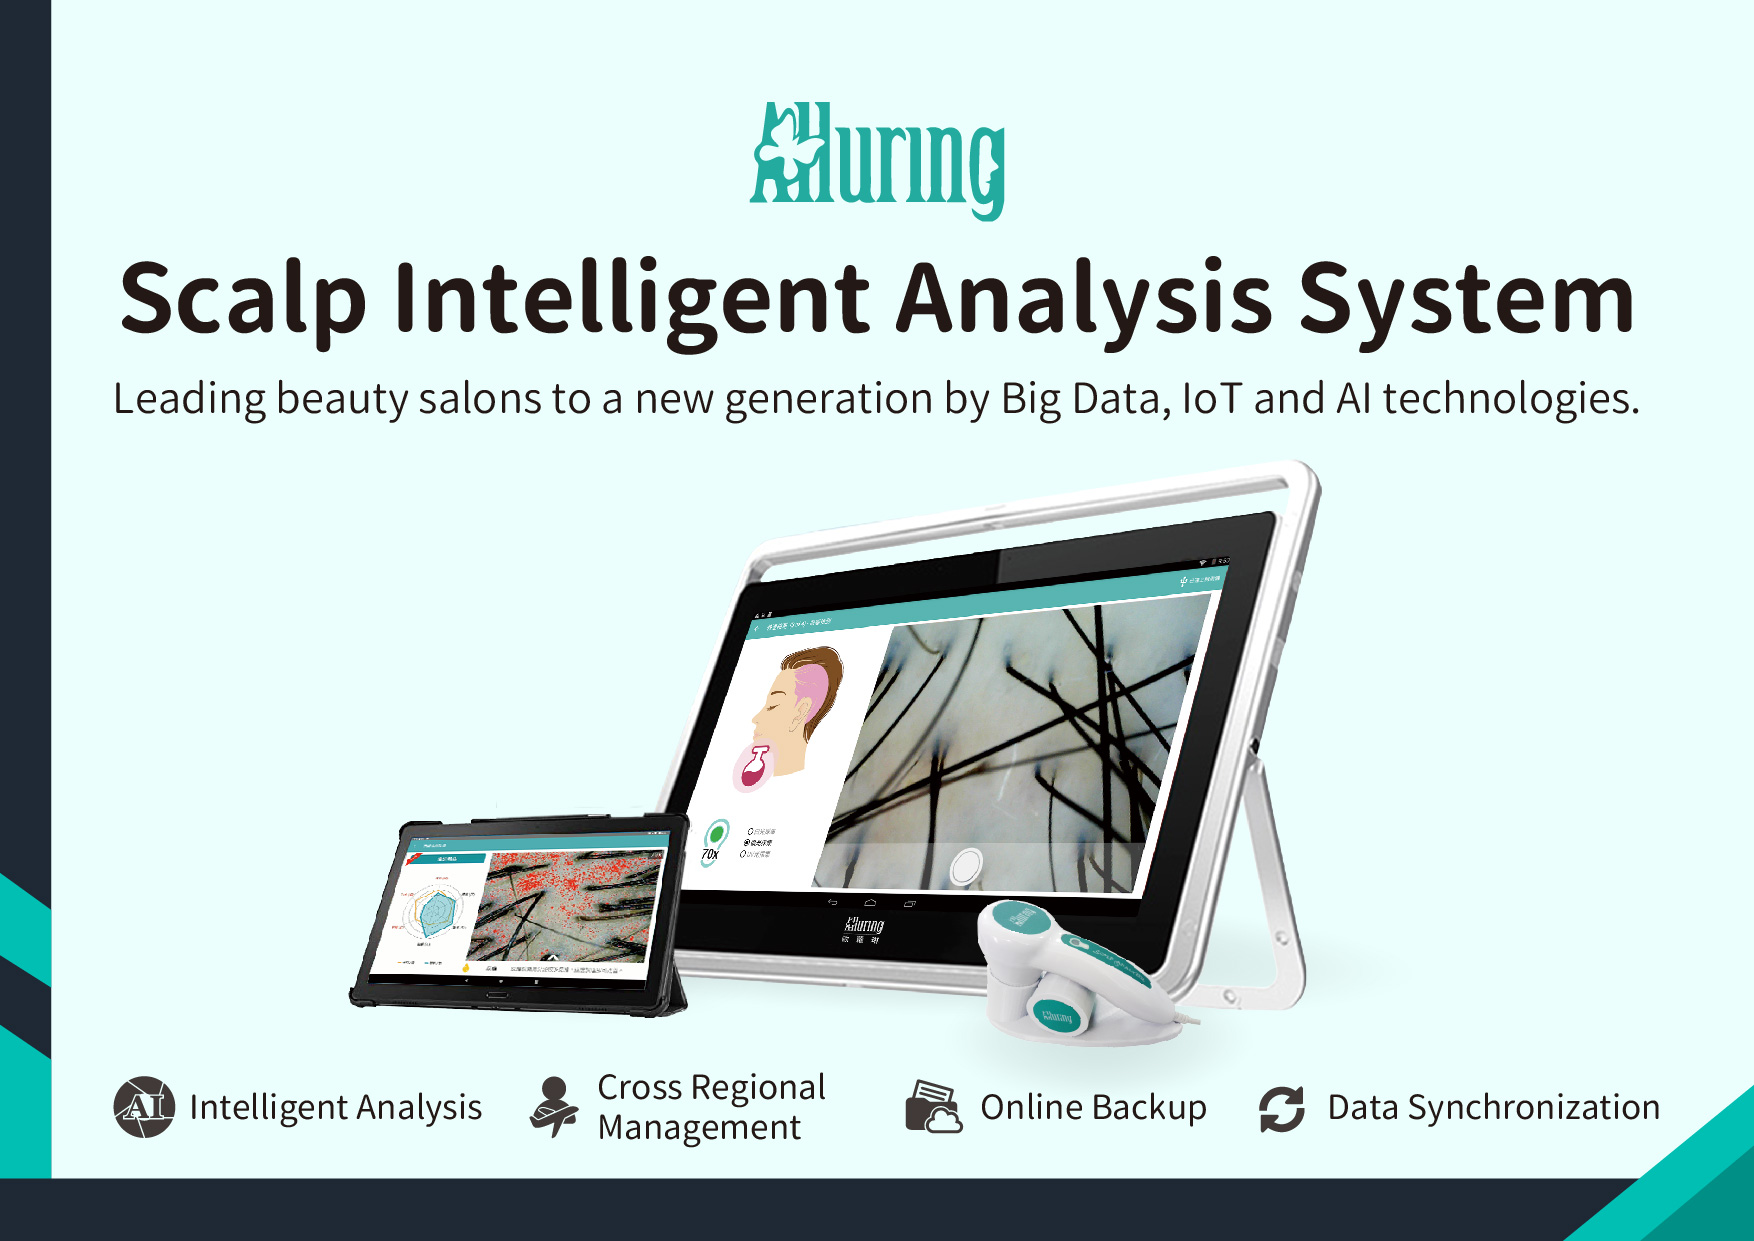 Alluring Scalp Intelligent Analysis System: Intelligent Analysis, Cross Regional Management, Online Backup, Data Synchronization.